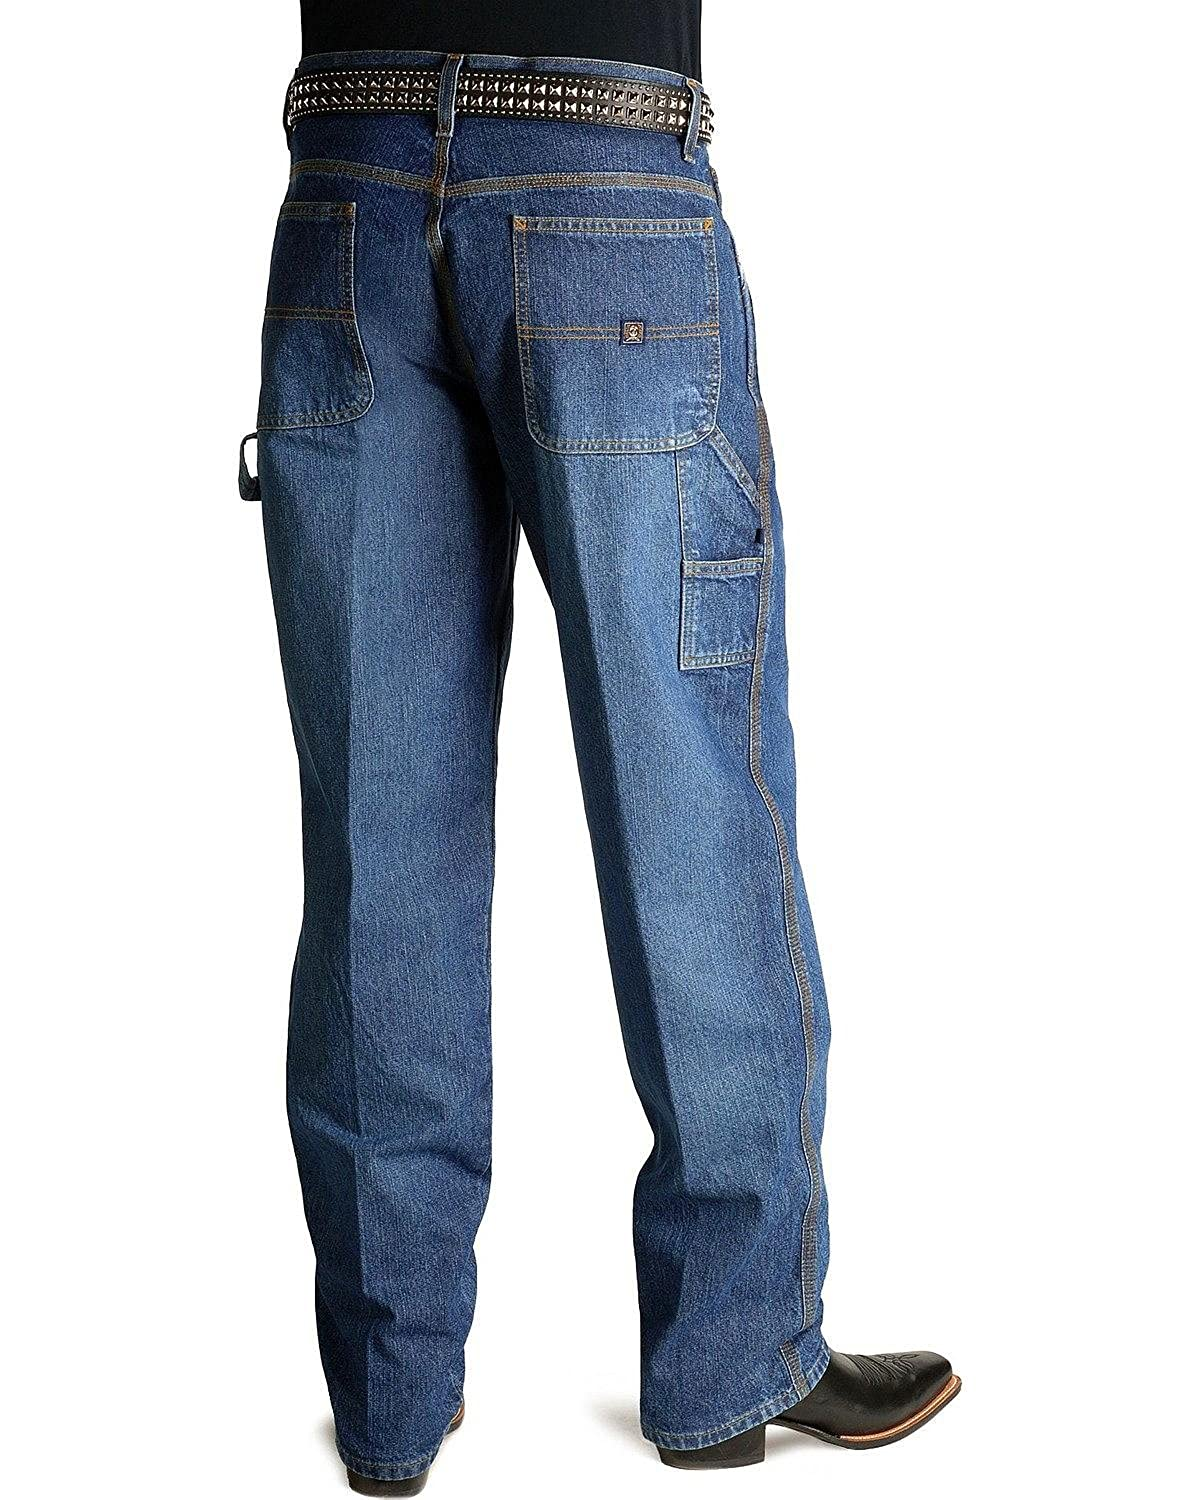 Mb90434002 Ind Cinch Mens Jeans Blue Label Utility Fit